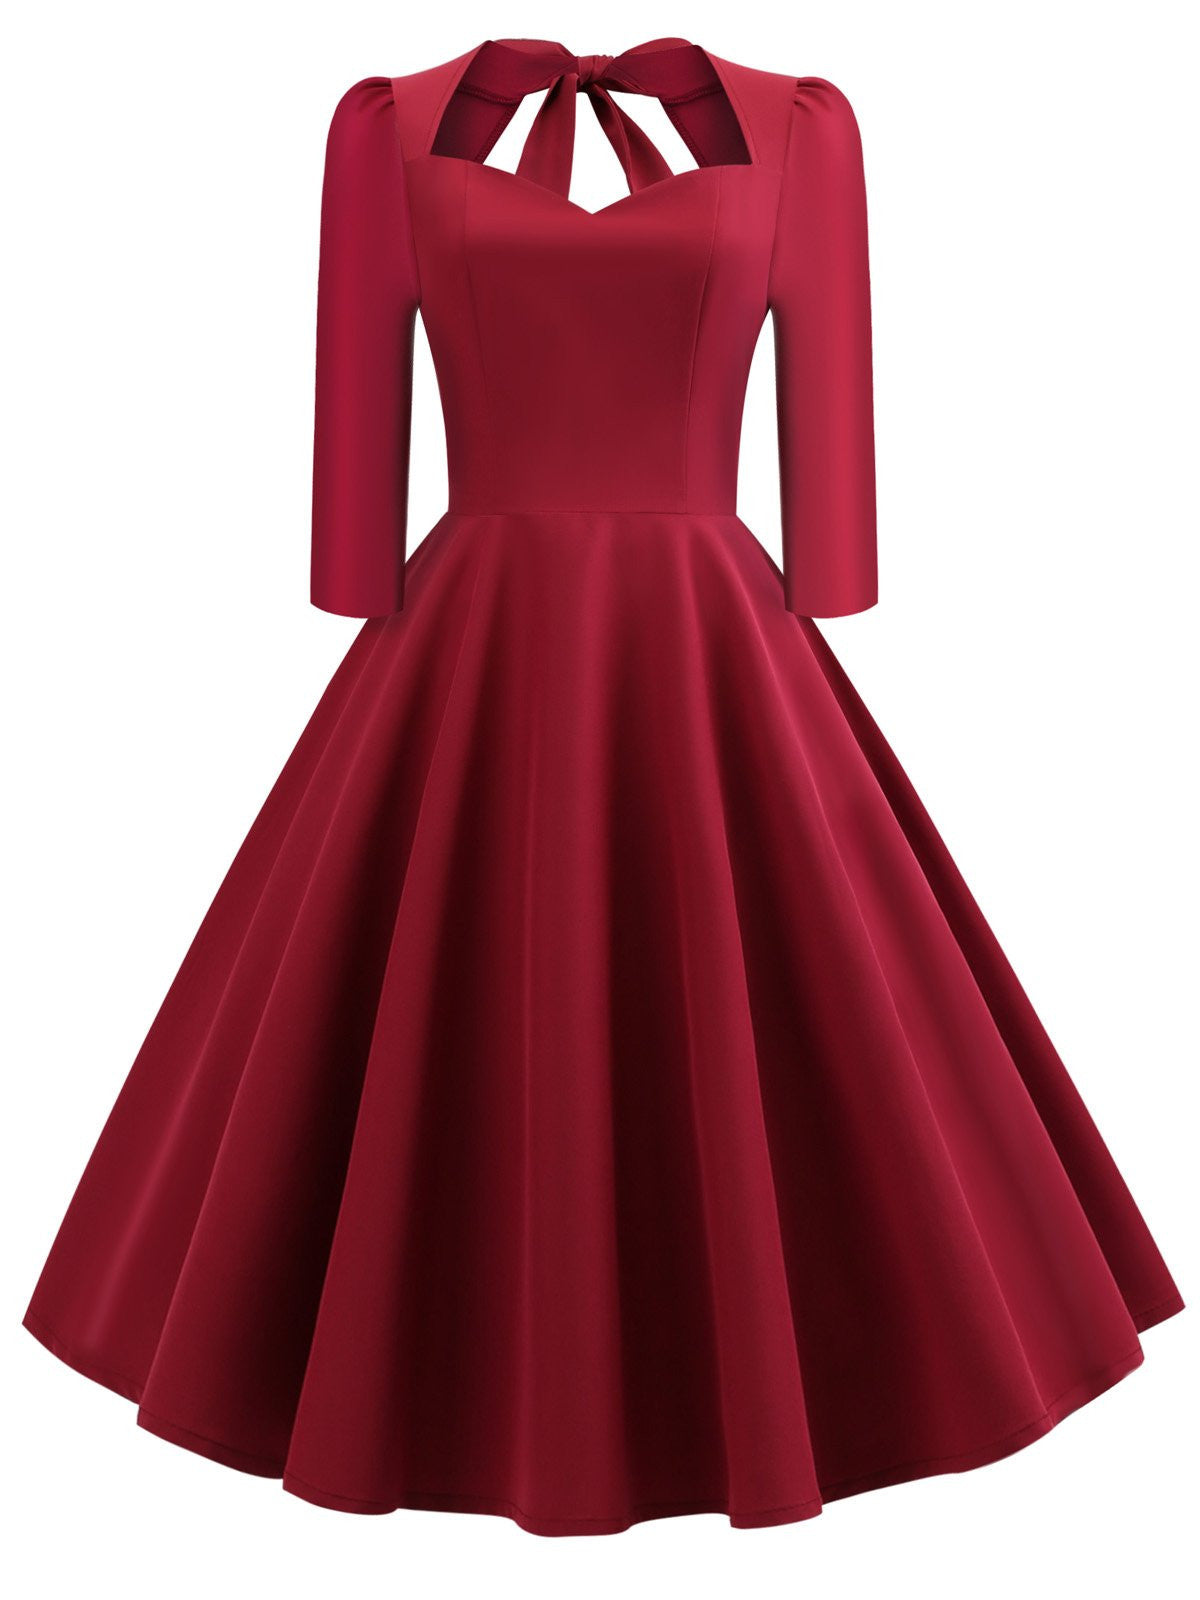 431e218ee4c8 1950s Solid 3/4 Sleeve Dress - Retro Stage - Chic Vintage Dresses ...